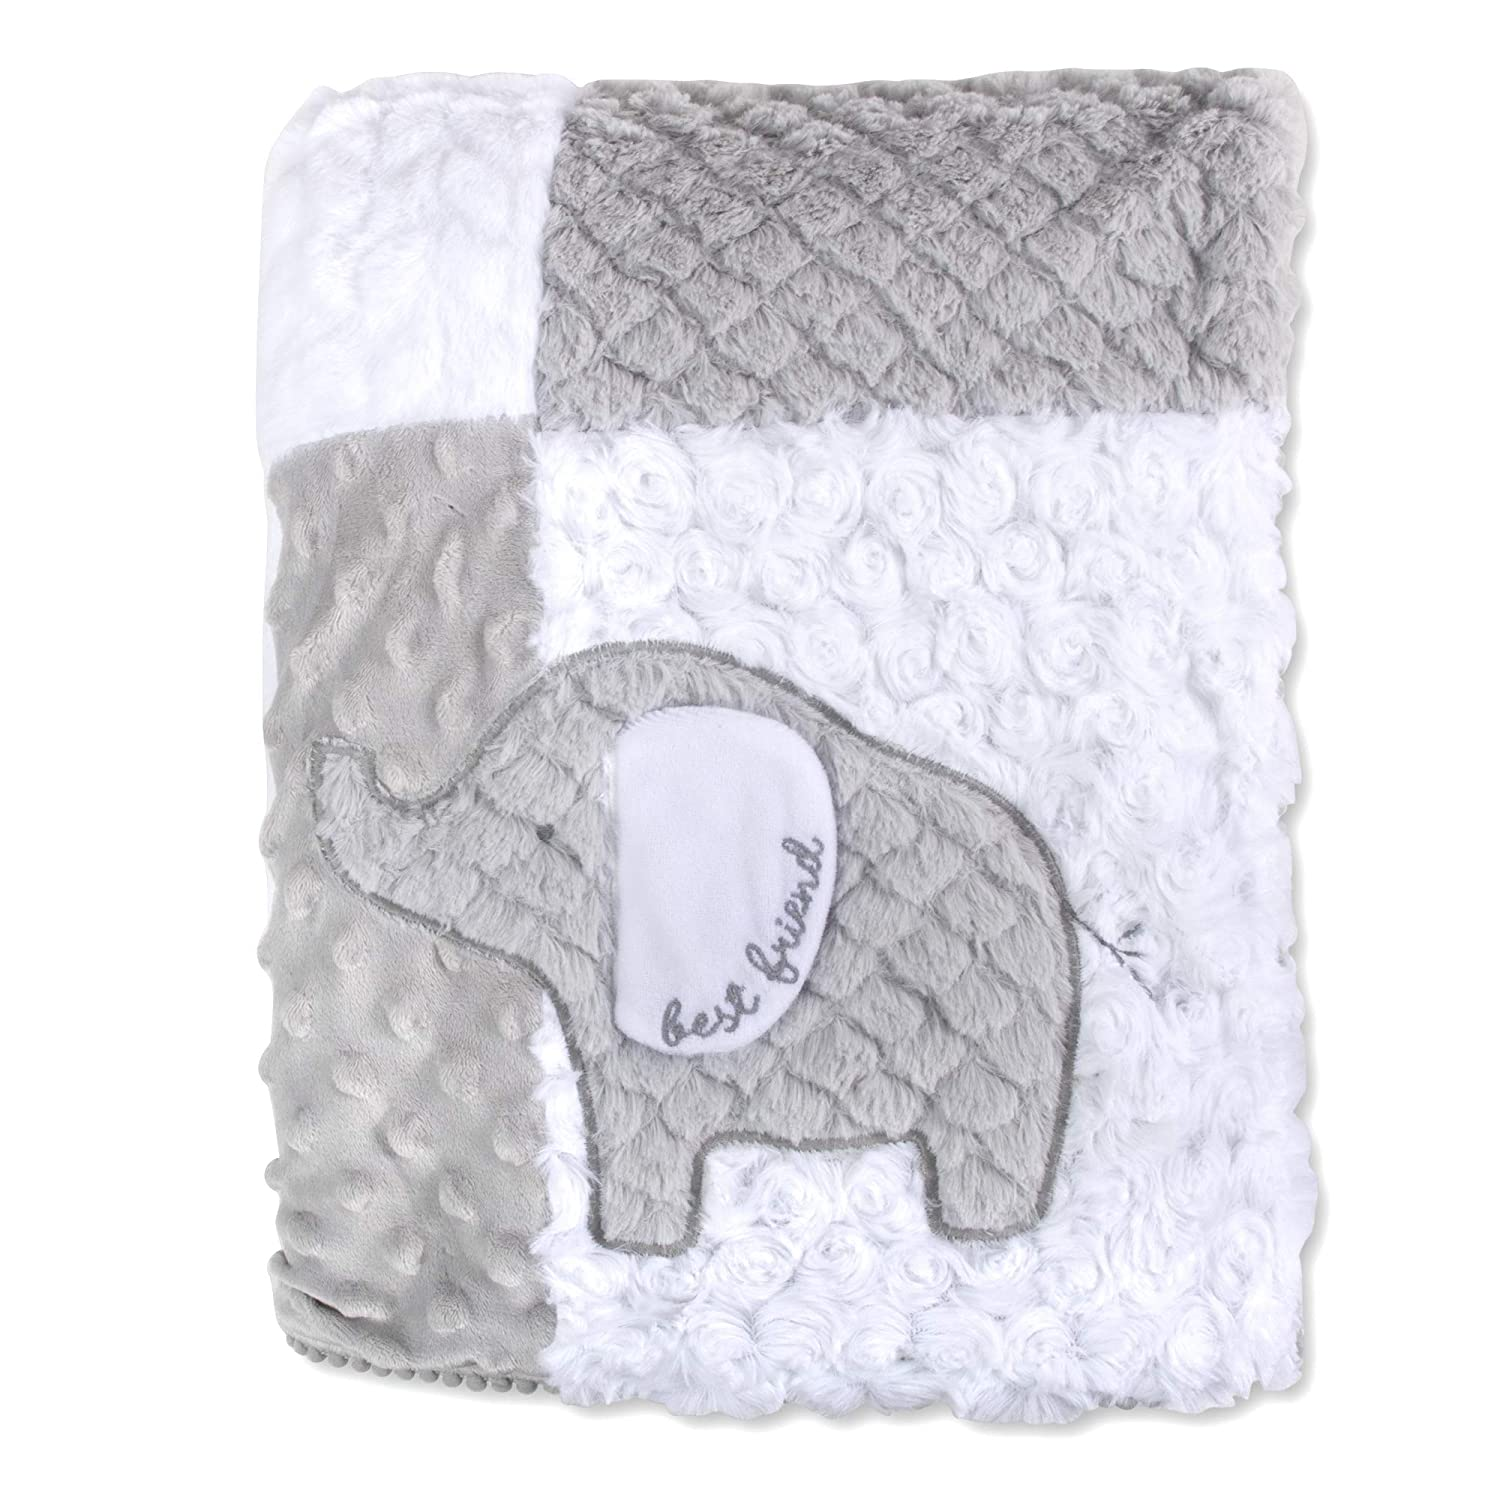 Wendy Bellissimo Reversible Baby Elephant Blanket with Baby Elephant in Gray and White